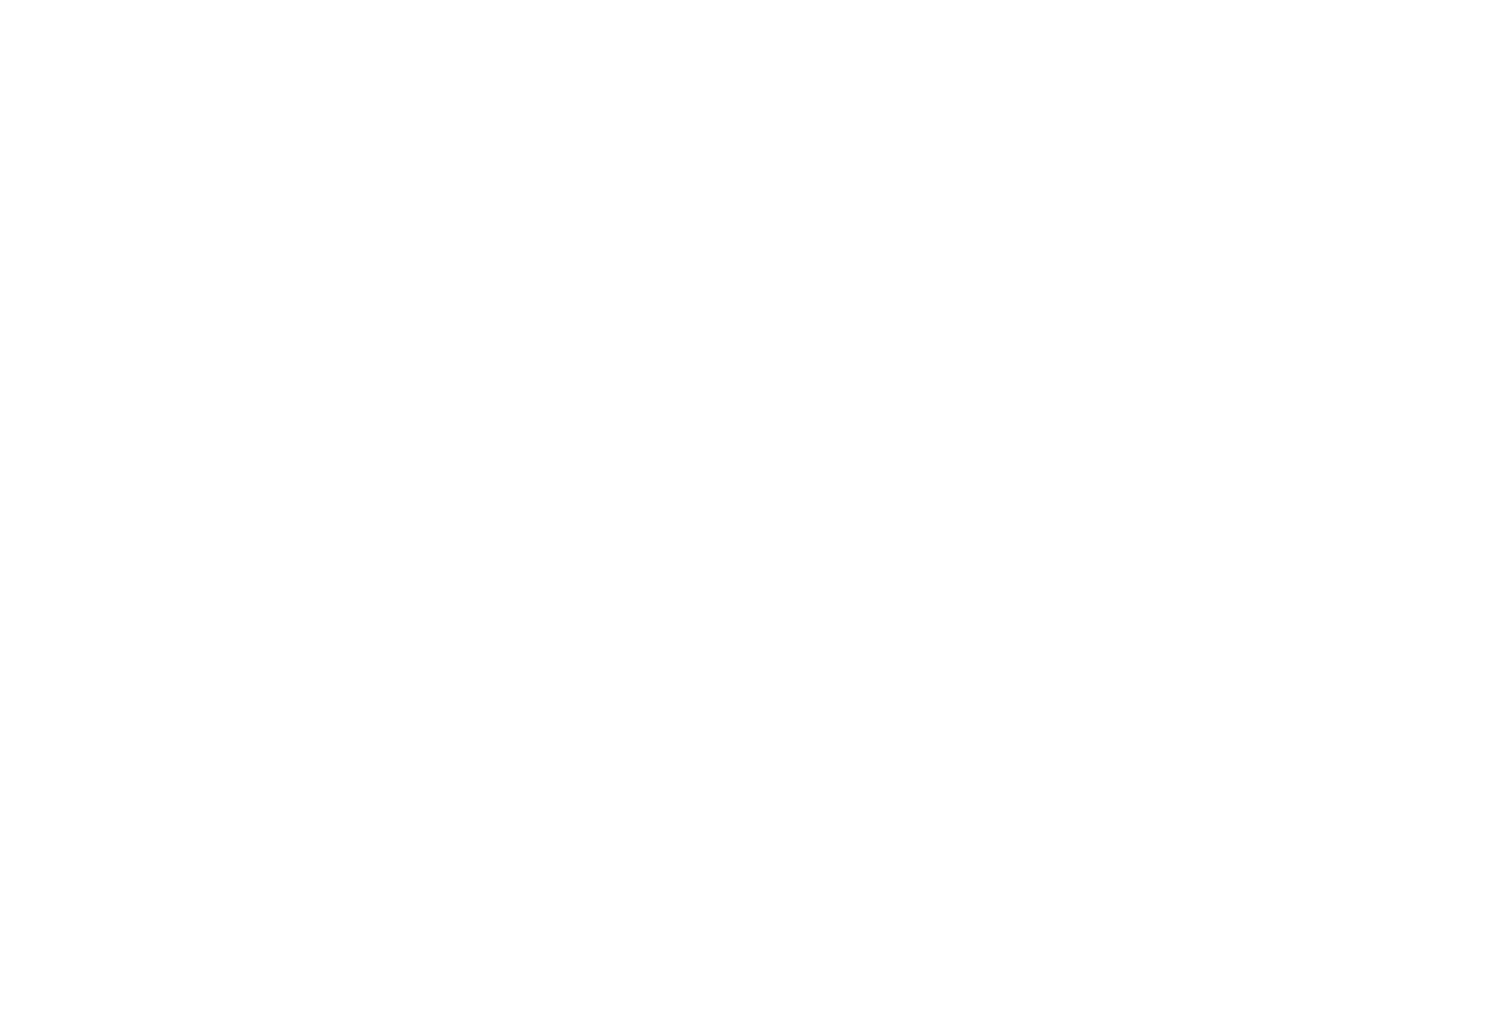 Alberto Lama Photography